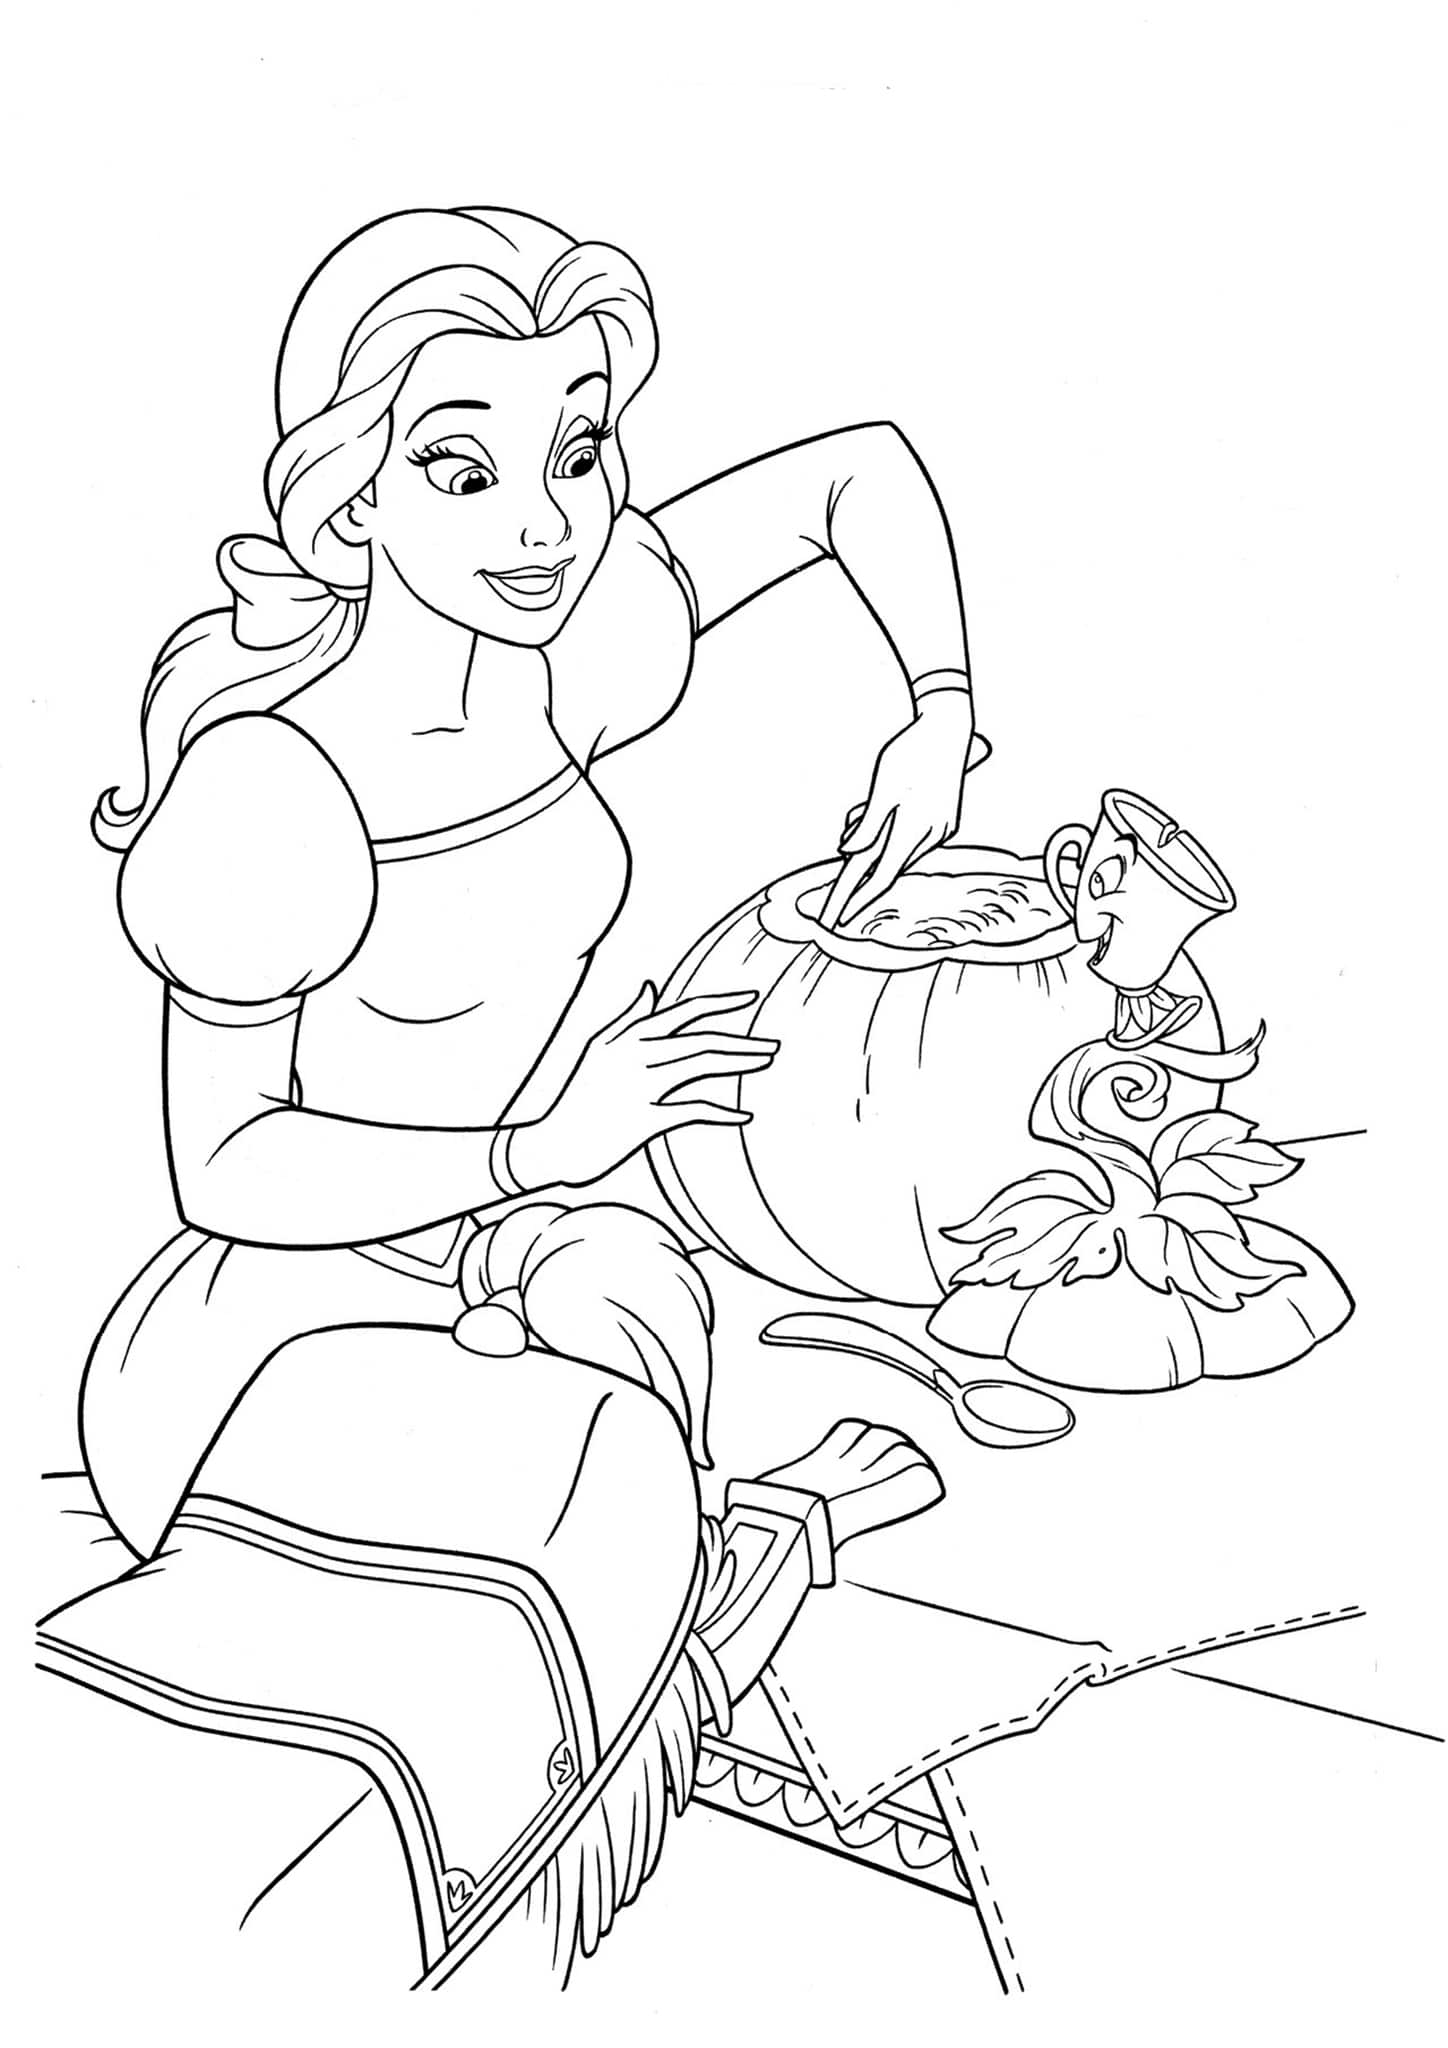 Sleeping Beauty Coloring Pages | Disneyclips.com | 2048x1448